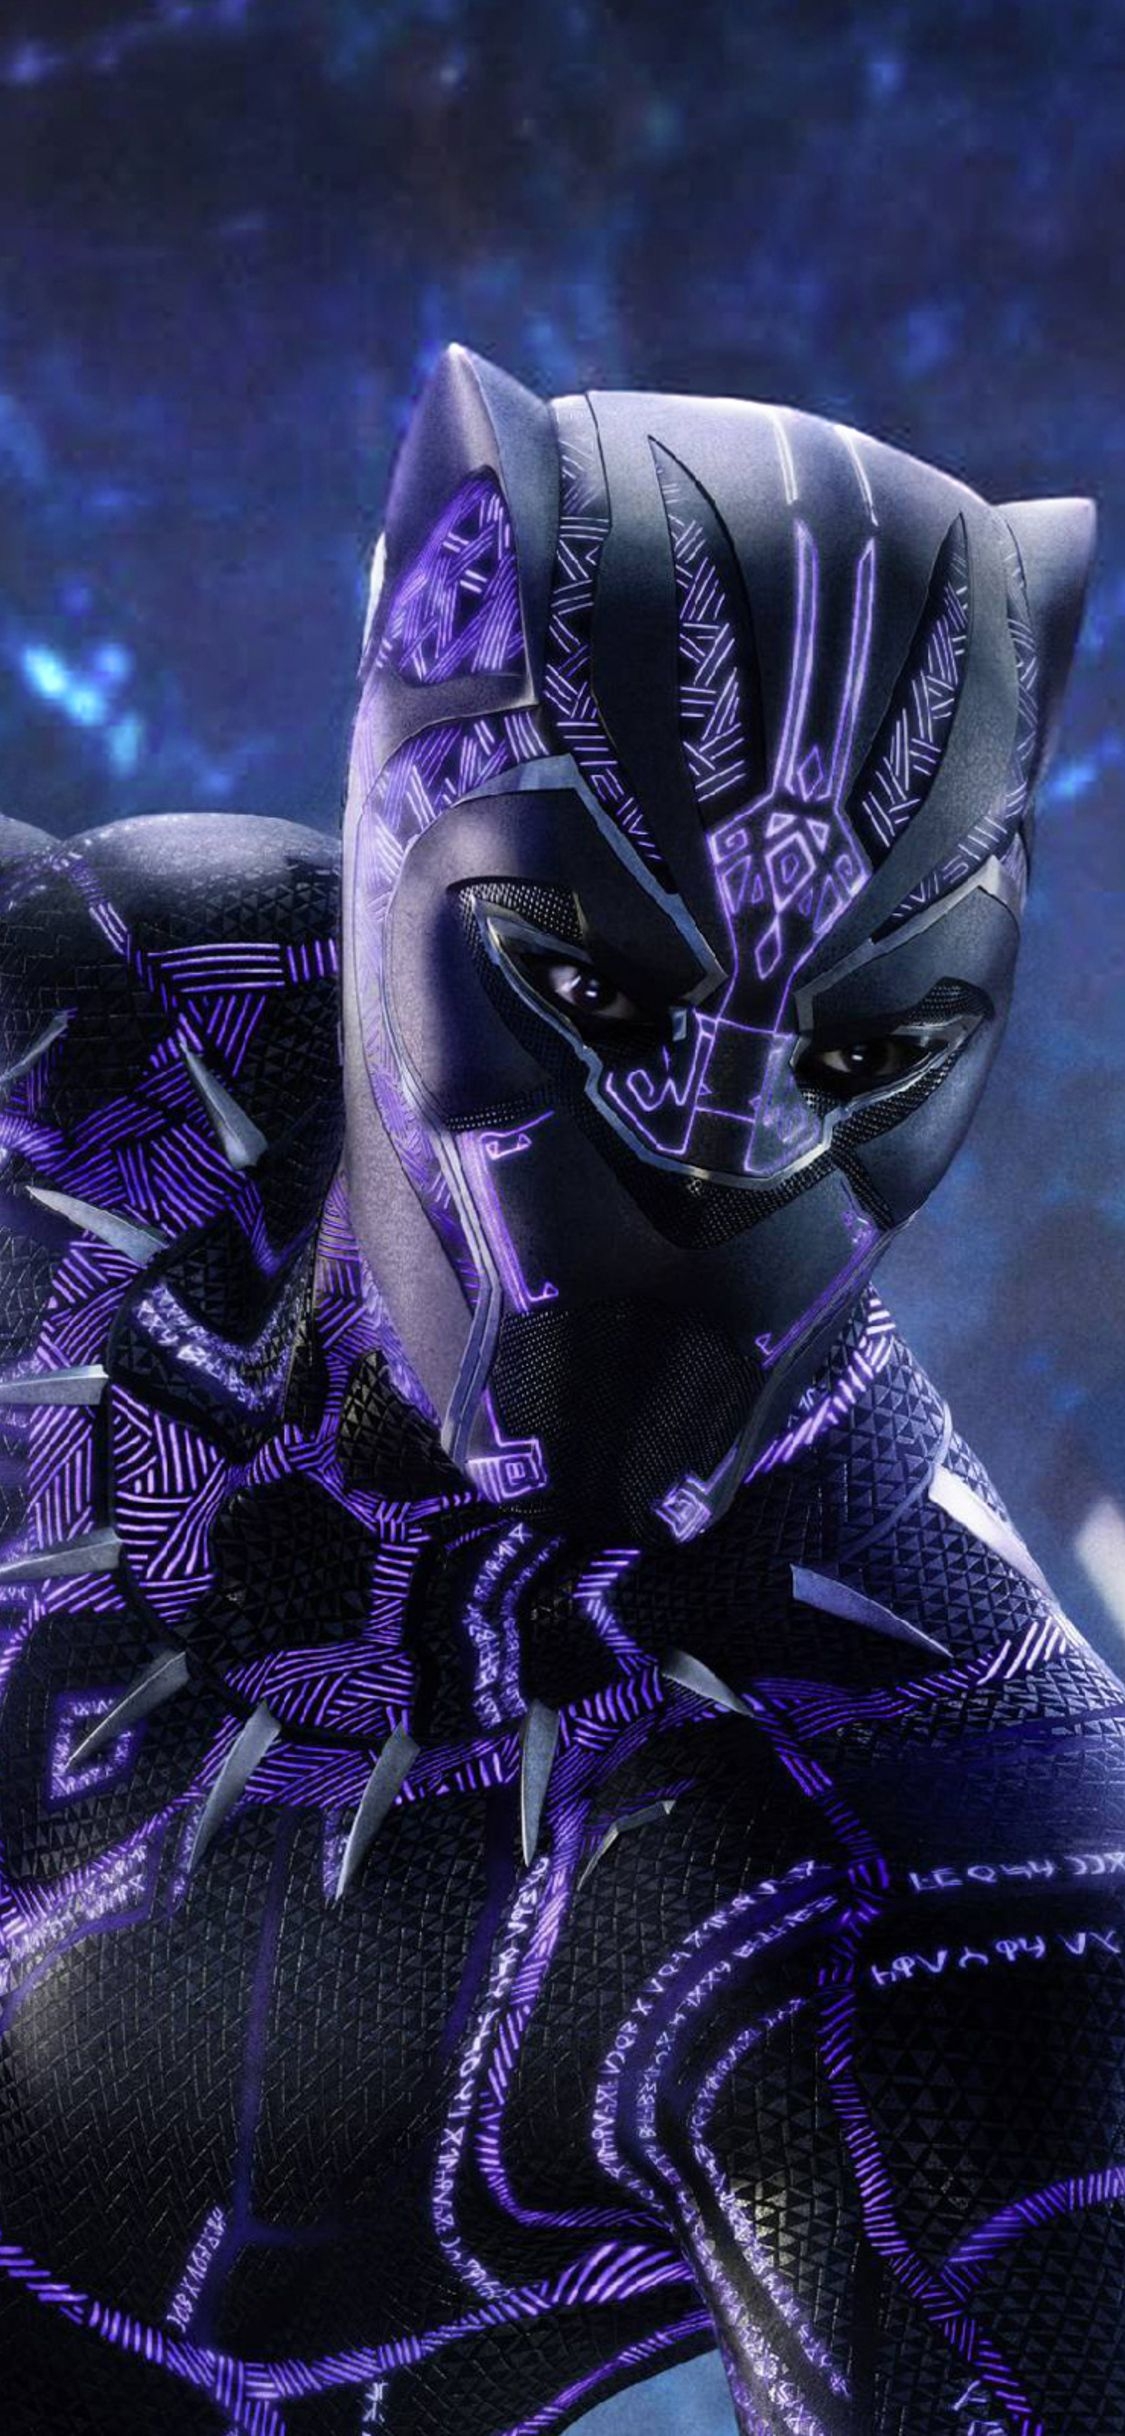 1125x2436 Black Panther Movie 2018 Poster Iphone XSIphone 10 1125x2436